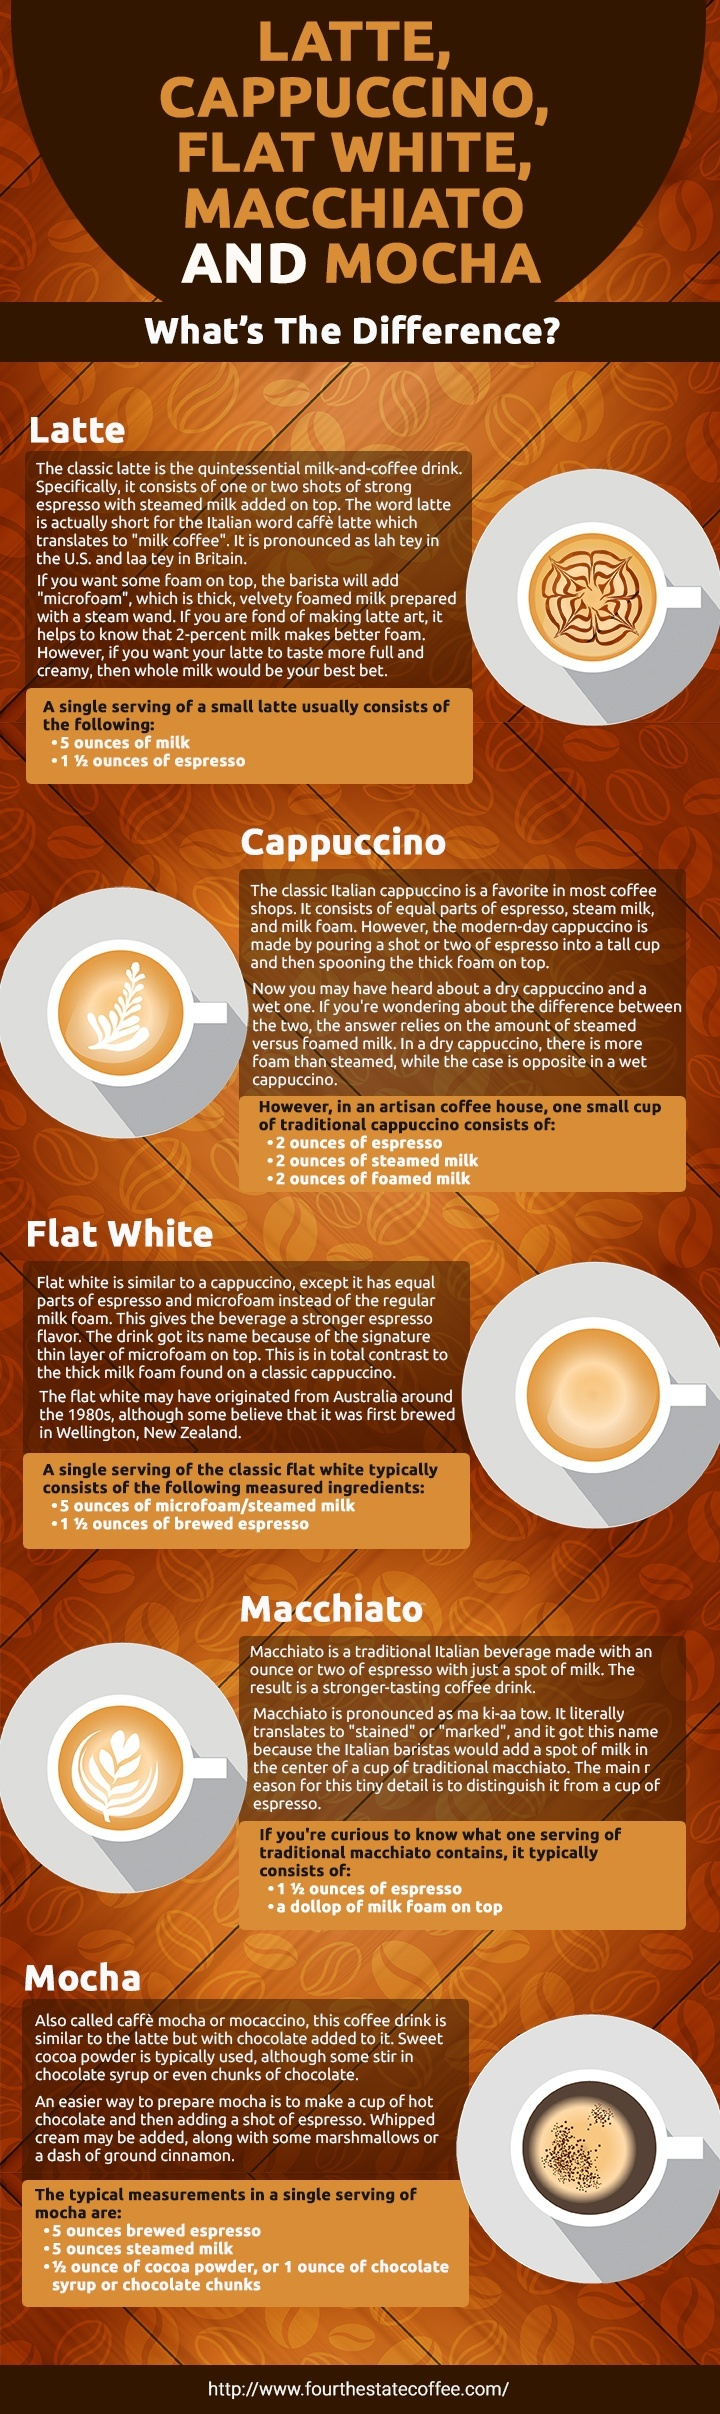 Latte, Cappuccino, Flat White, Macchiato and Mocha: What's The Difference?